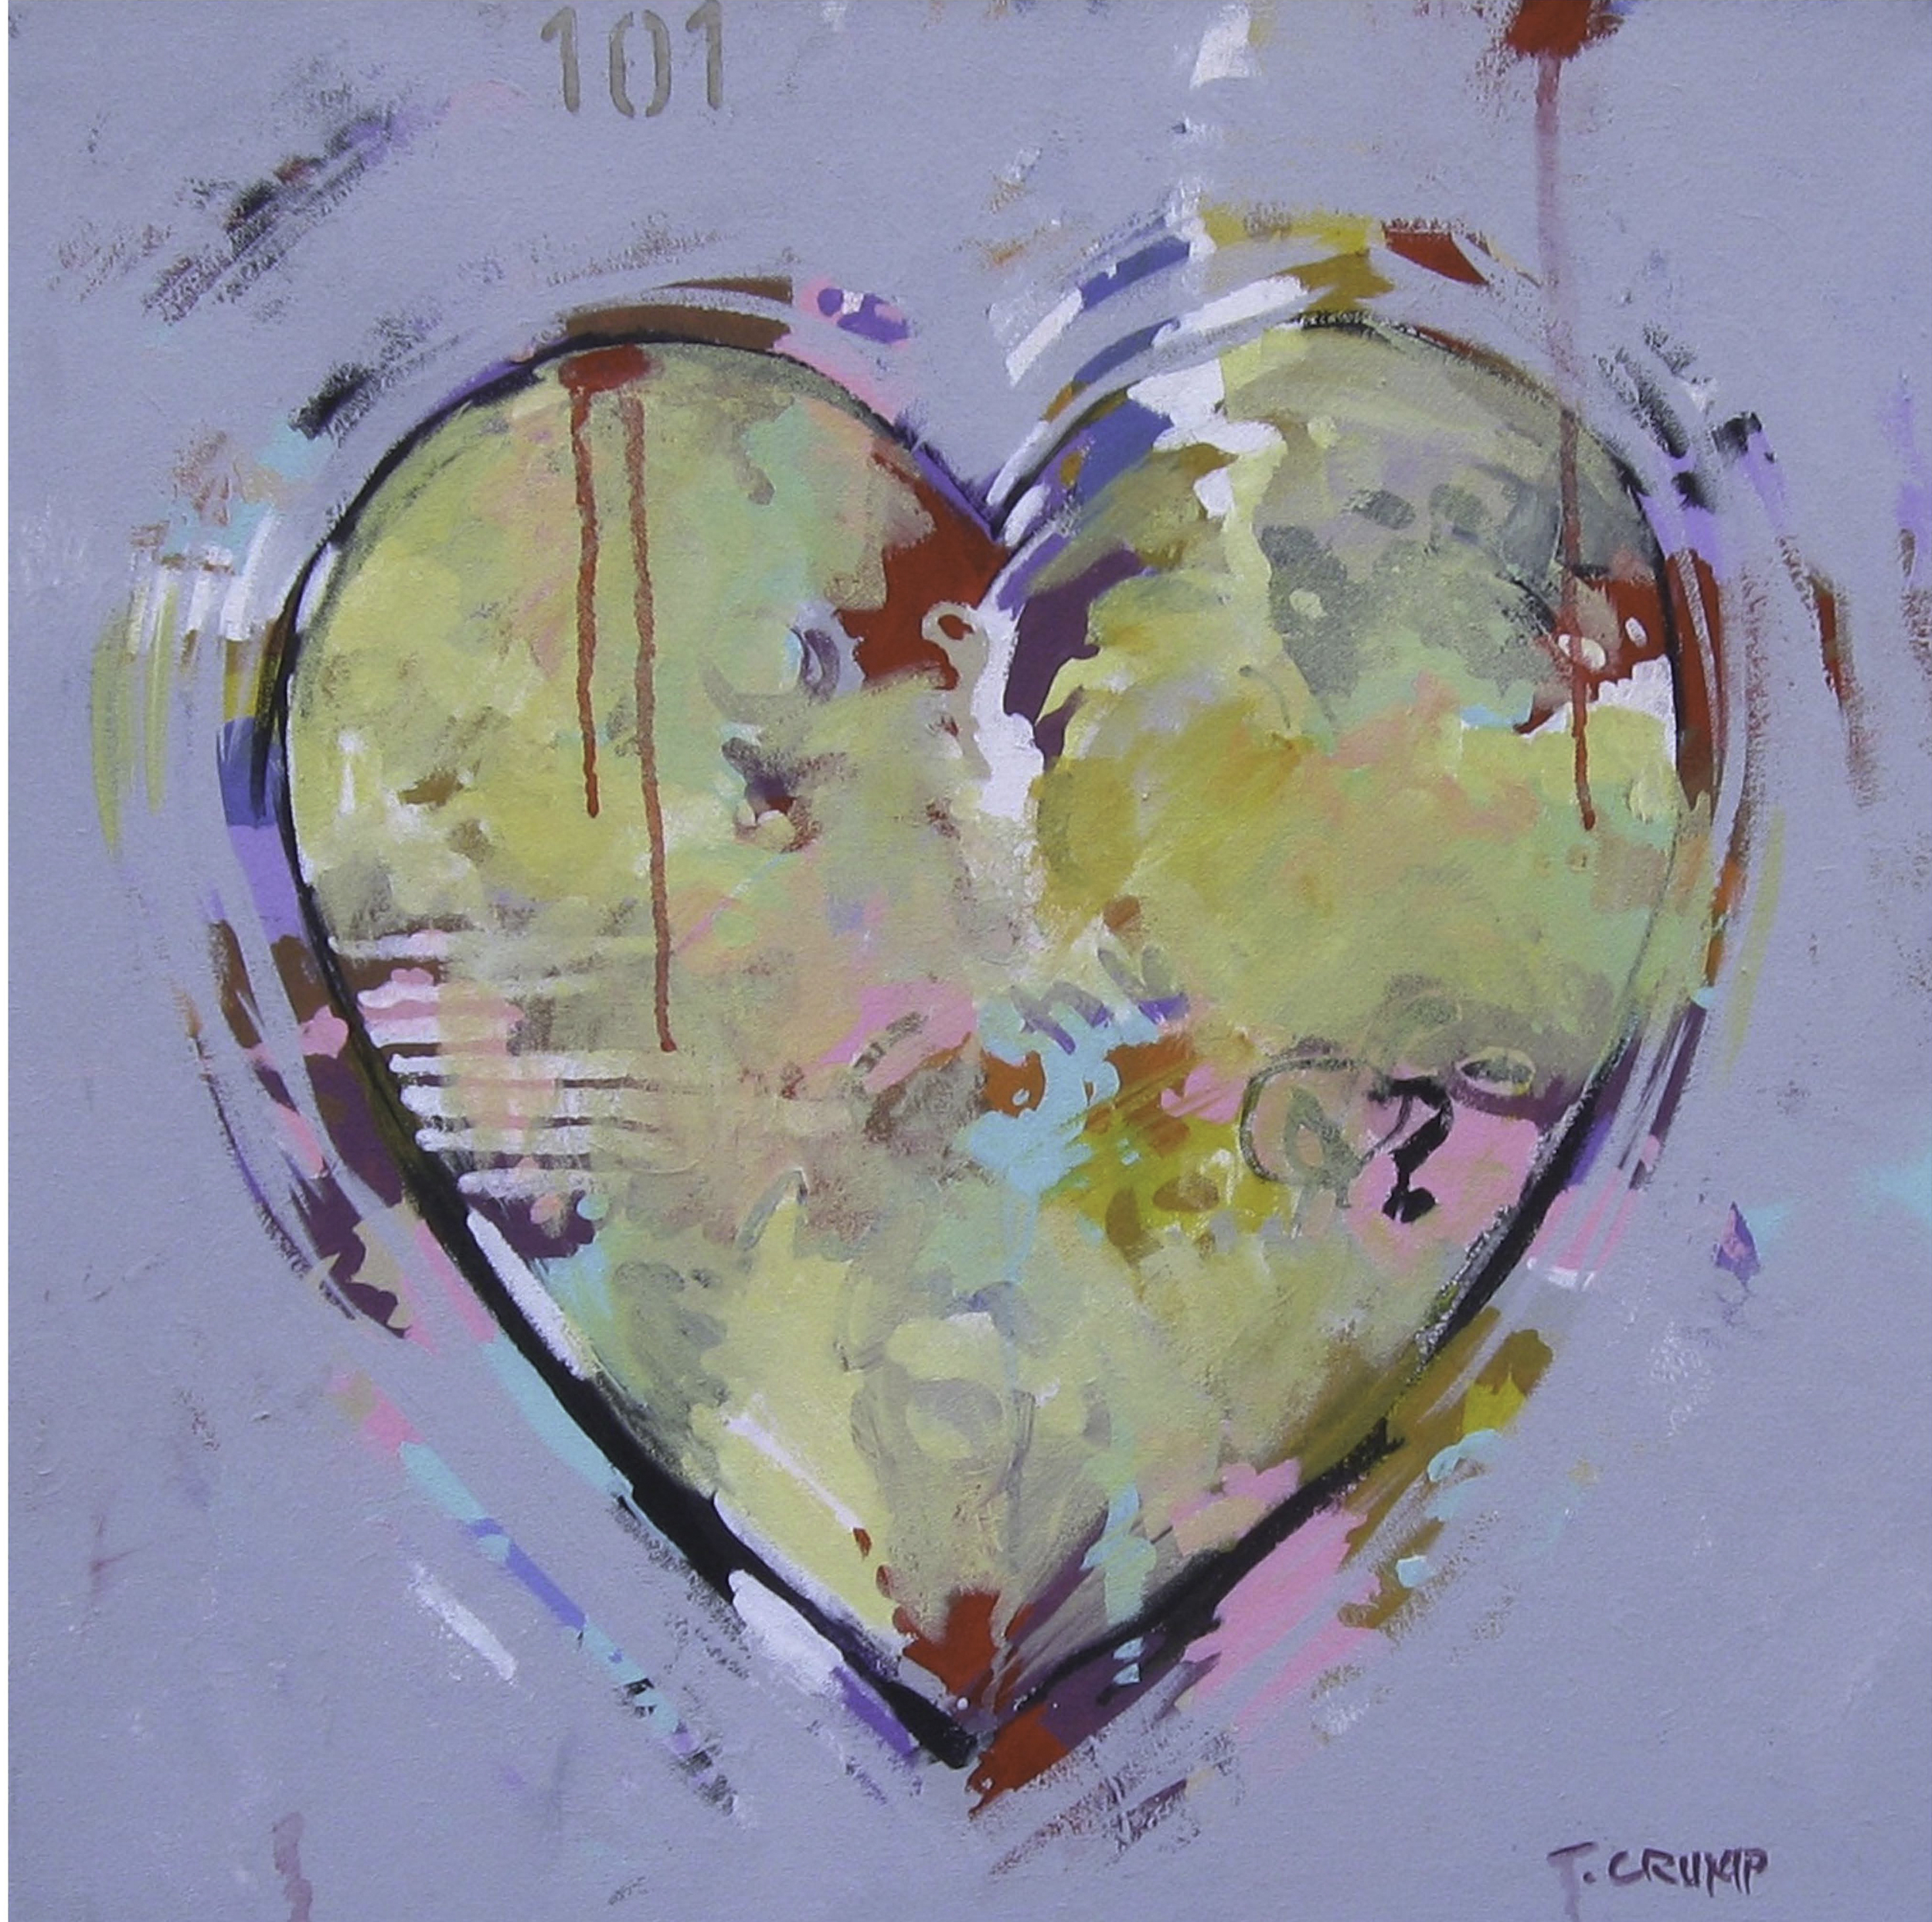 HEART # 101 by T. Crump